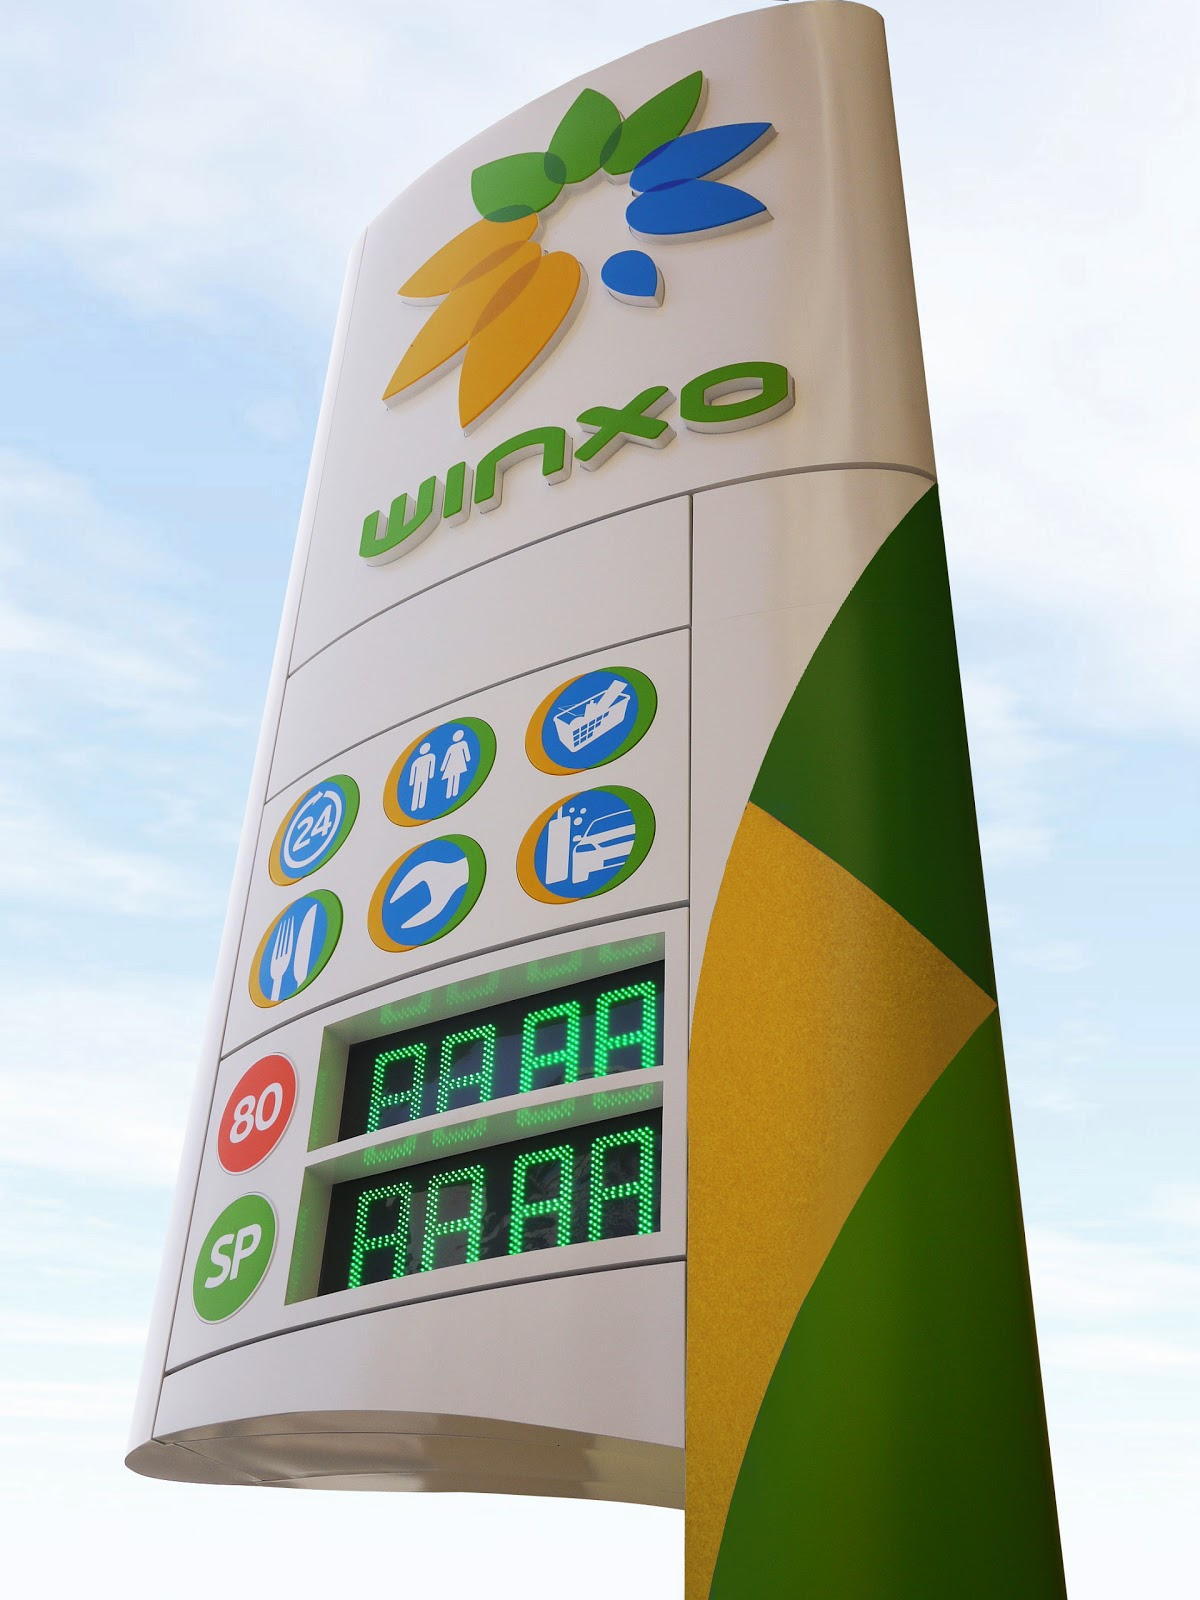 Winxo is the new name of Moroccan petroleum group CMH (Compagnie Marocaine d'Hydrocarbures) with ambitious plans to grow and to diversify into new innovative businesses outside its traditional business of distribution of petroleum products.